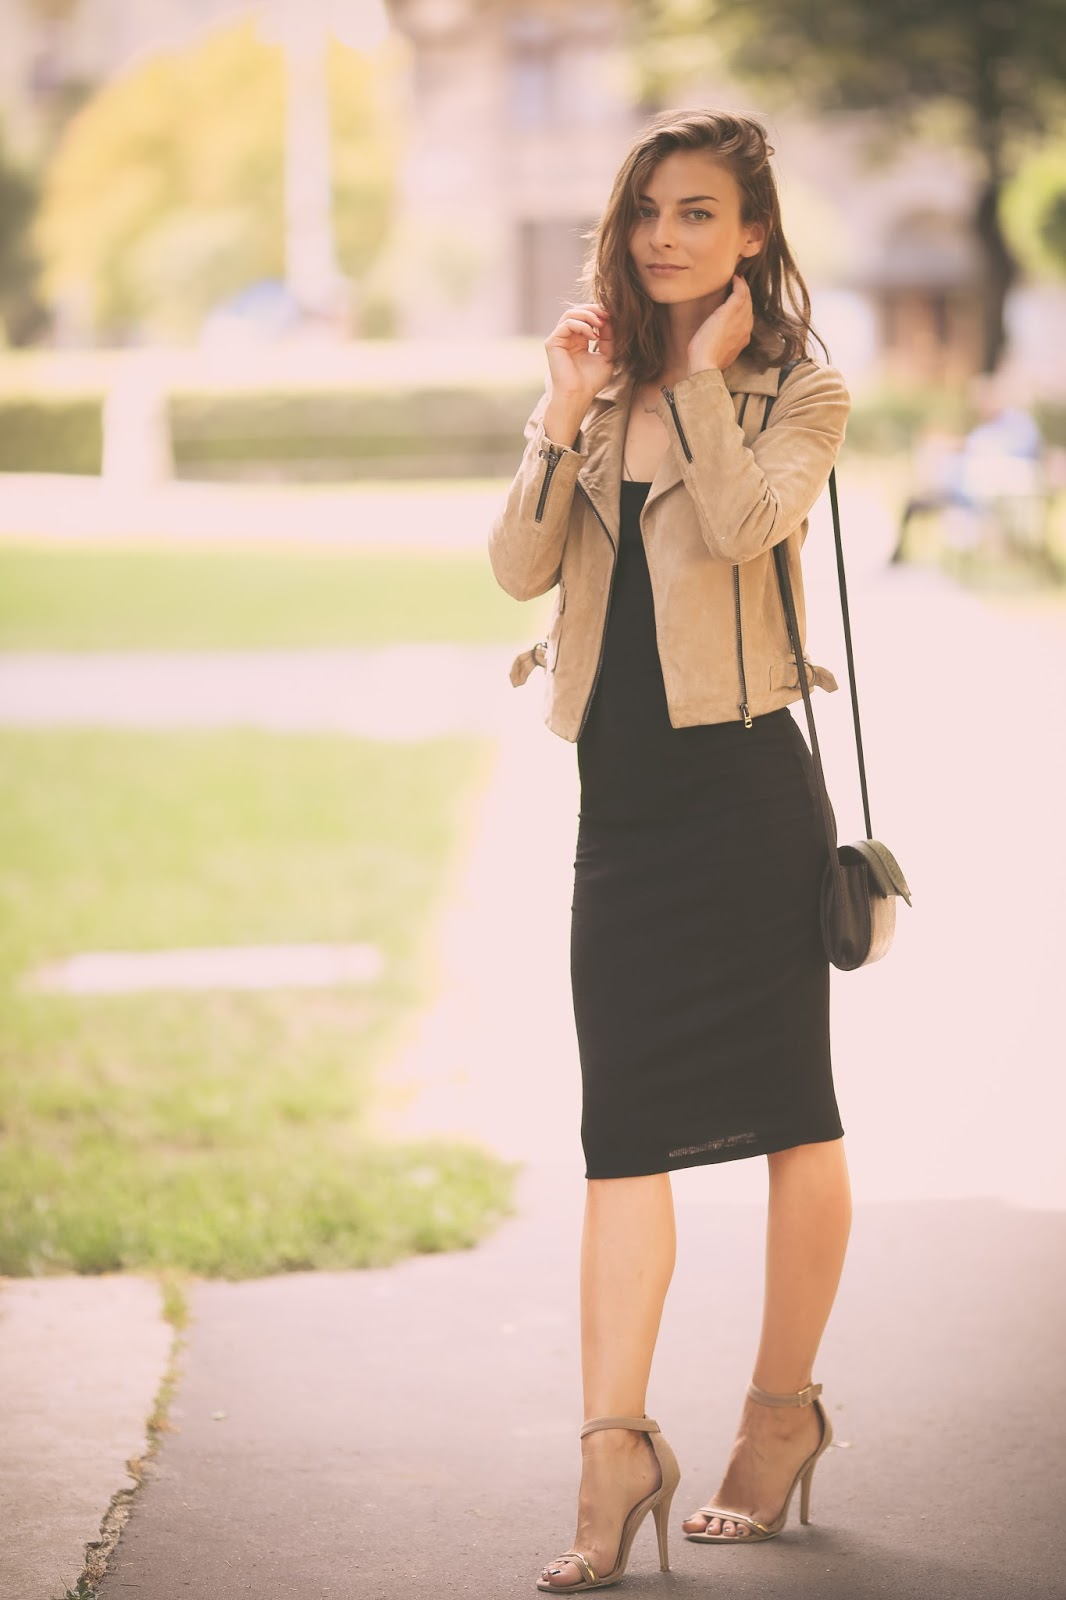 Black And Beige Living Room Decor: WEARING THE LITTLE BLACK DRESS WITH A BEIGE JACKET